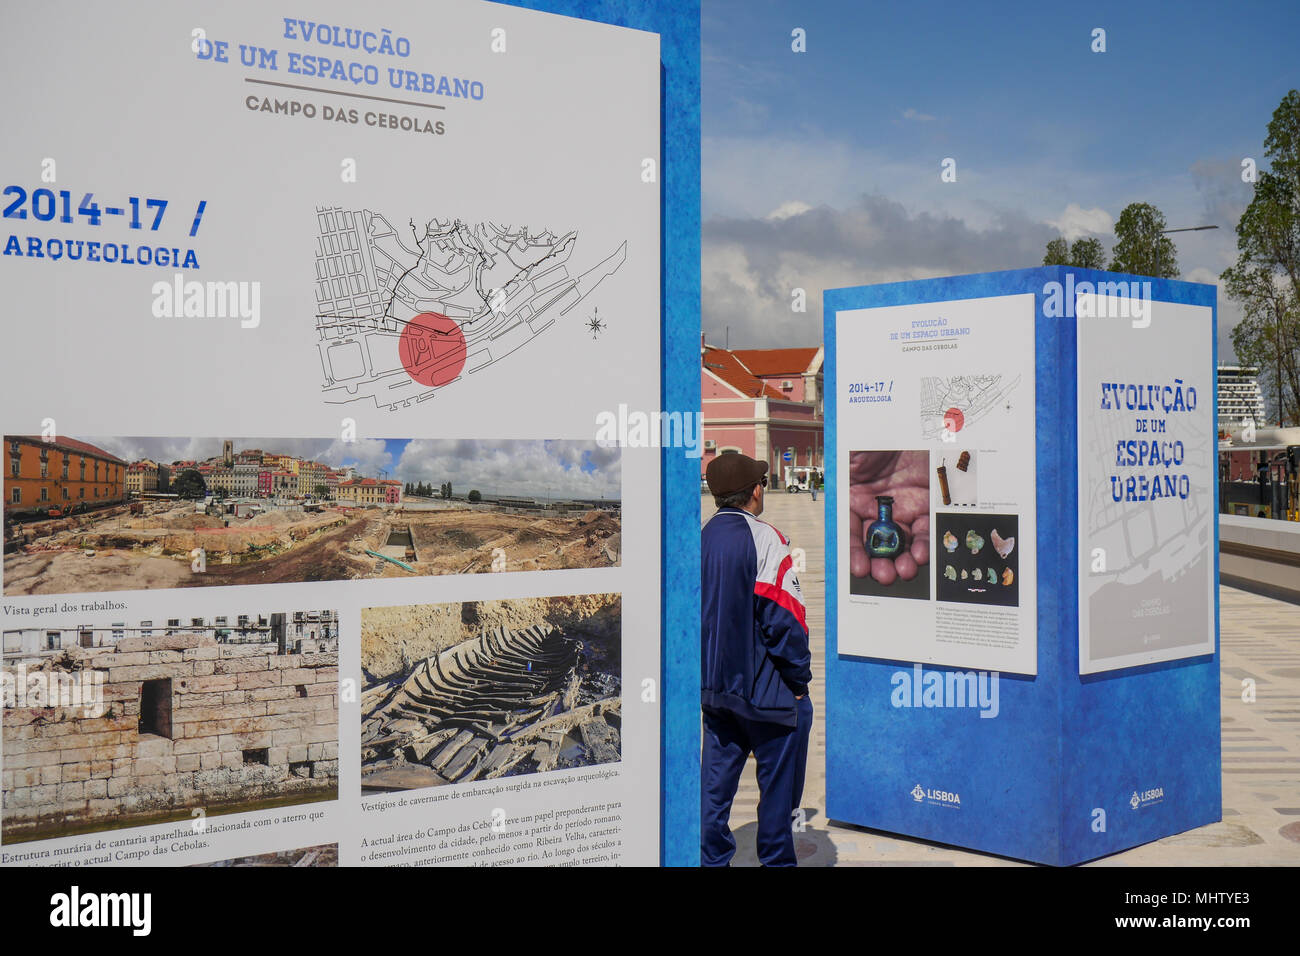 Town planning project for Lisbon Tourism harbor, Lisbon, Portugal - Stock Image